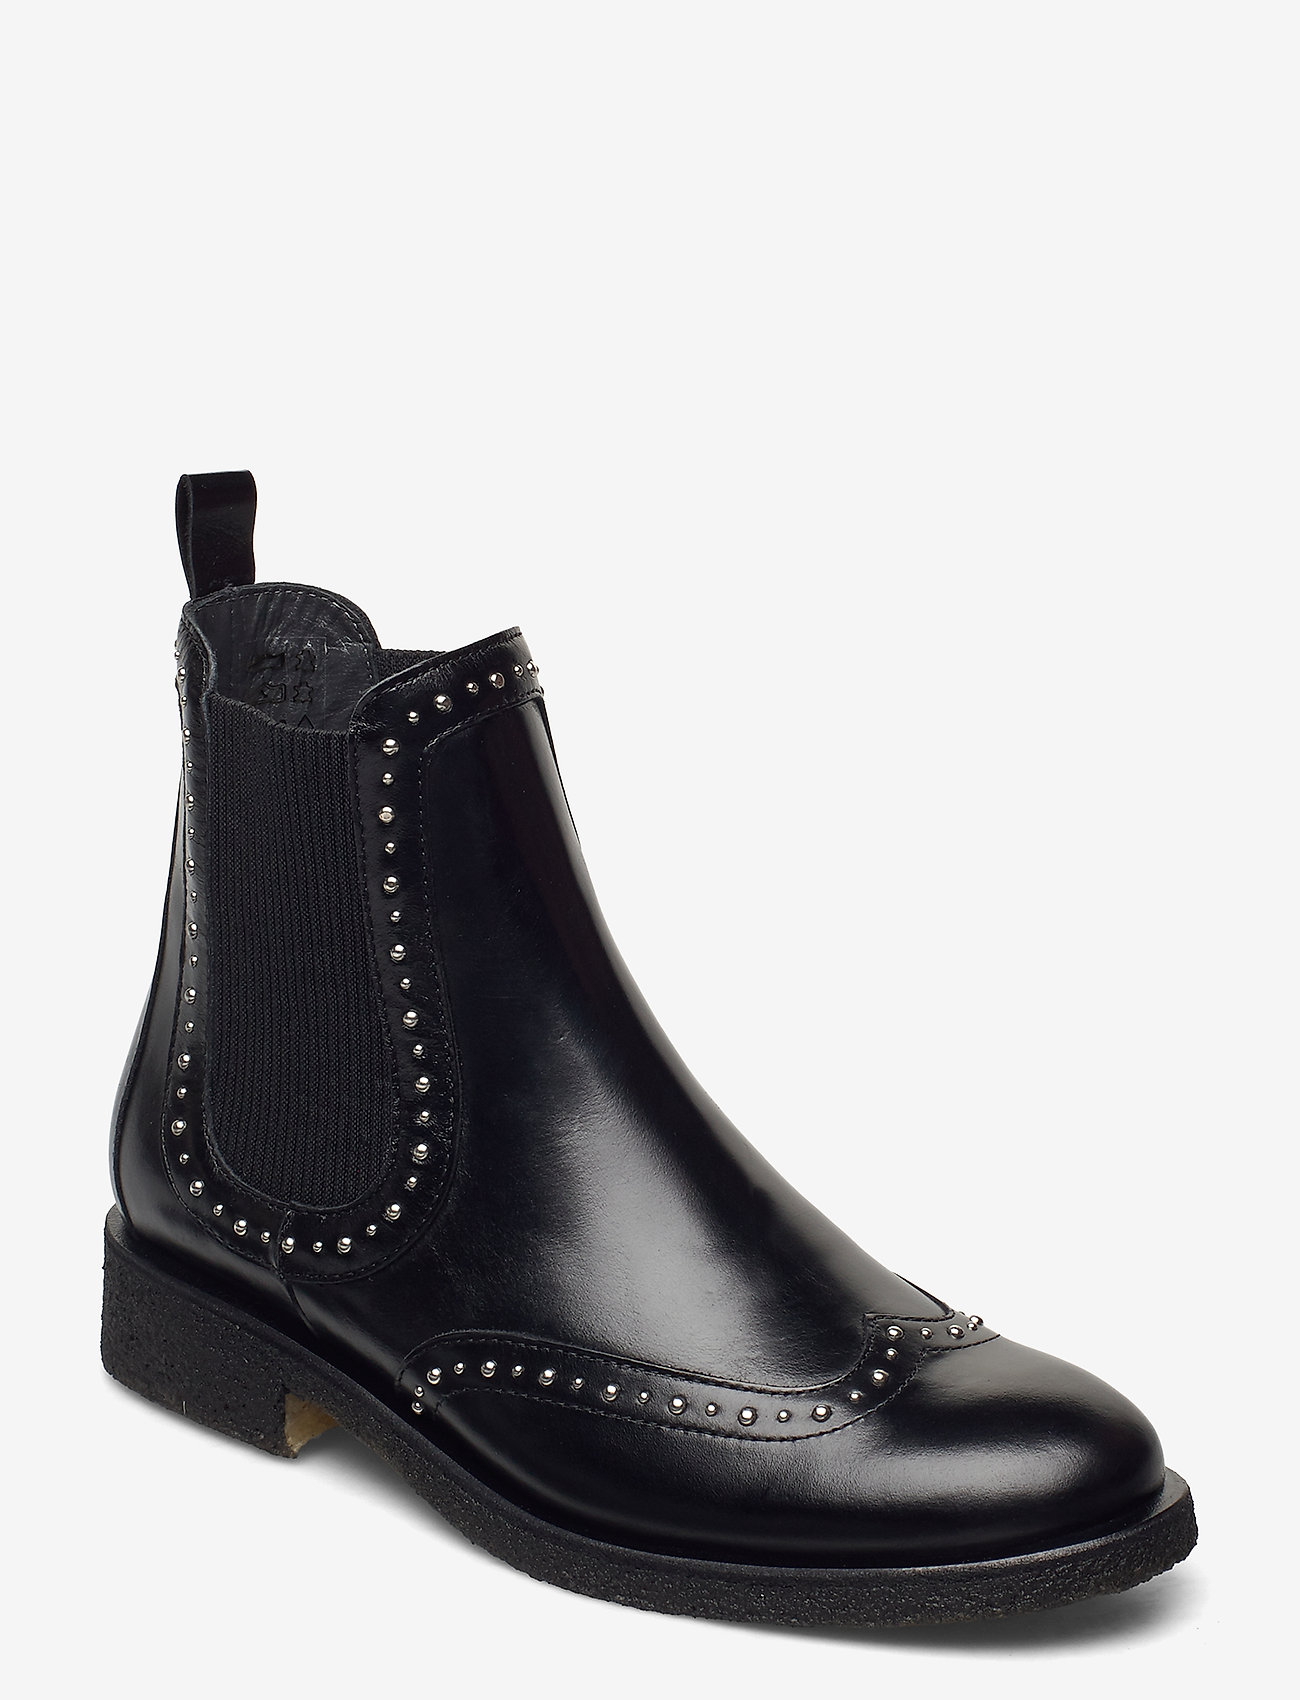 ANGULUS - Booties - flat - with elastic - chelsea boots - 1835/019 black /black - 0